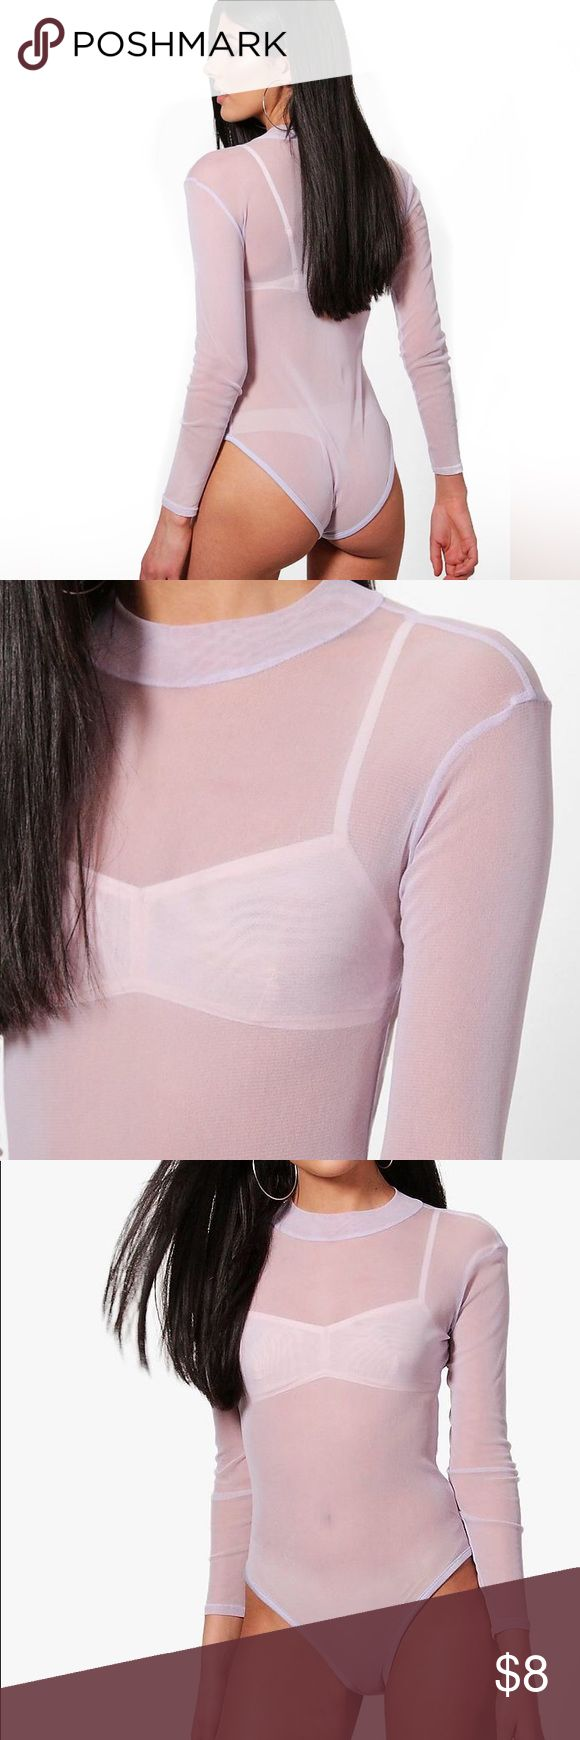 "NWT Boohoo rose blush mock neck bodysuit New with tags & never worn. Pretty little rose colored sheer mock neck. So many styling options here.   Machine Washable. 100% Polyester. Flat Measurement of Garment Not Worn. Total Length 45cm/17.5"". Measured On UK Size 10. Model Wear UK Size 1 Boohoo Intimates & Sleepwear Shapewear"